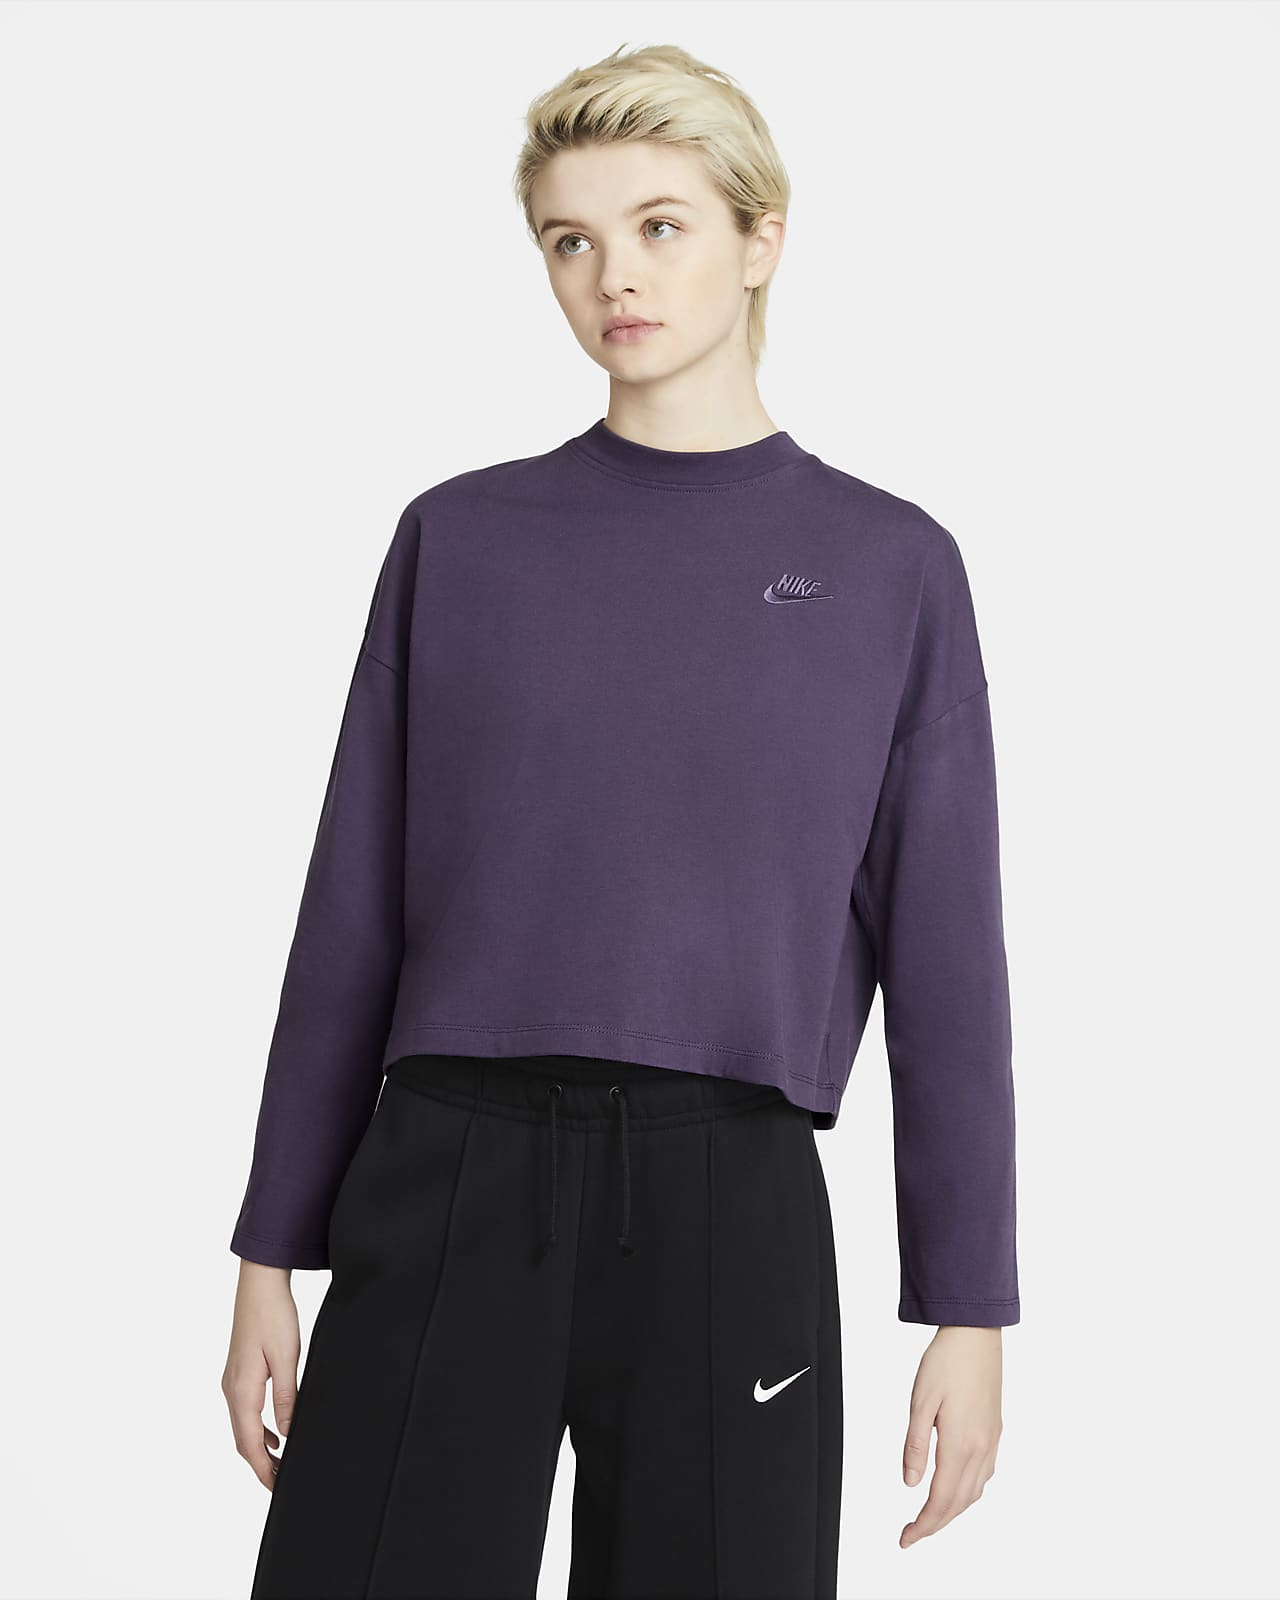 Nike Sportswear Women's Jersey Long-Sleeve Top